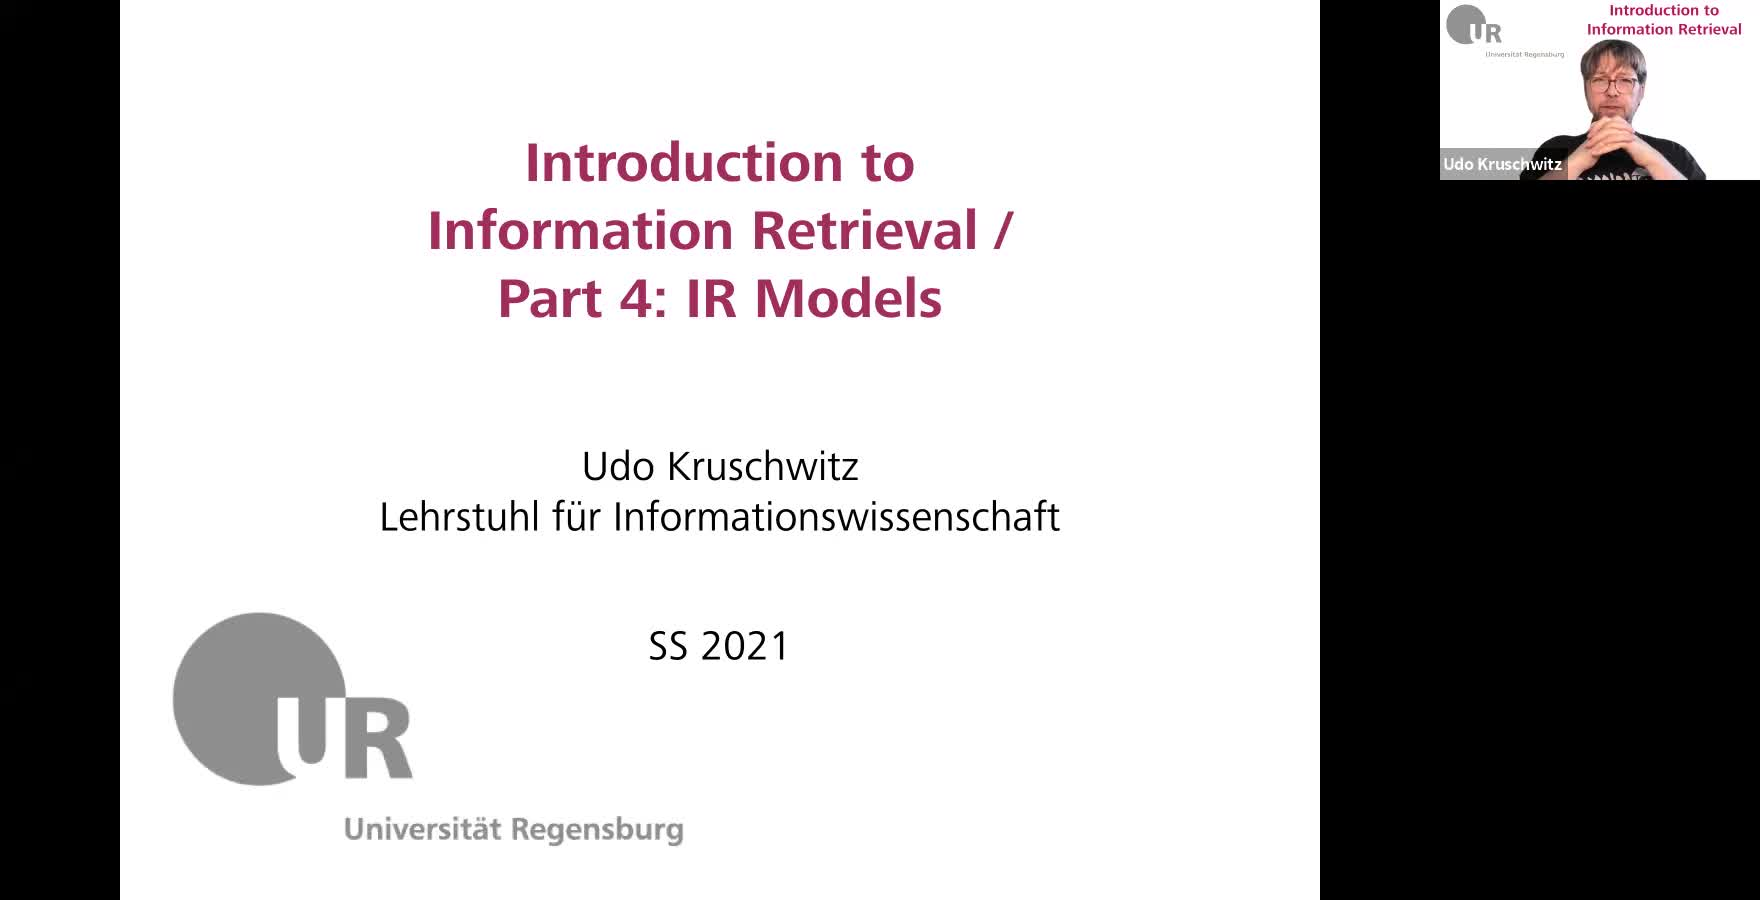 Introduction to Information Retrieval - Lecture 4 (IR Models)